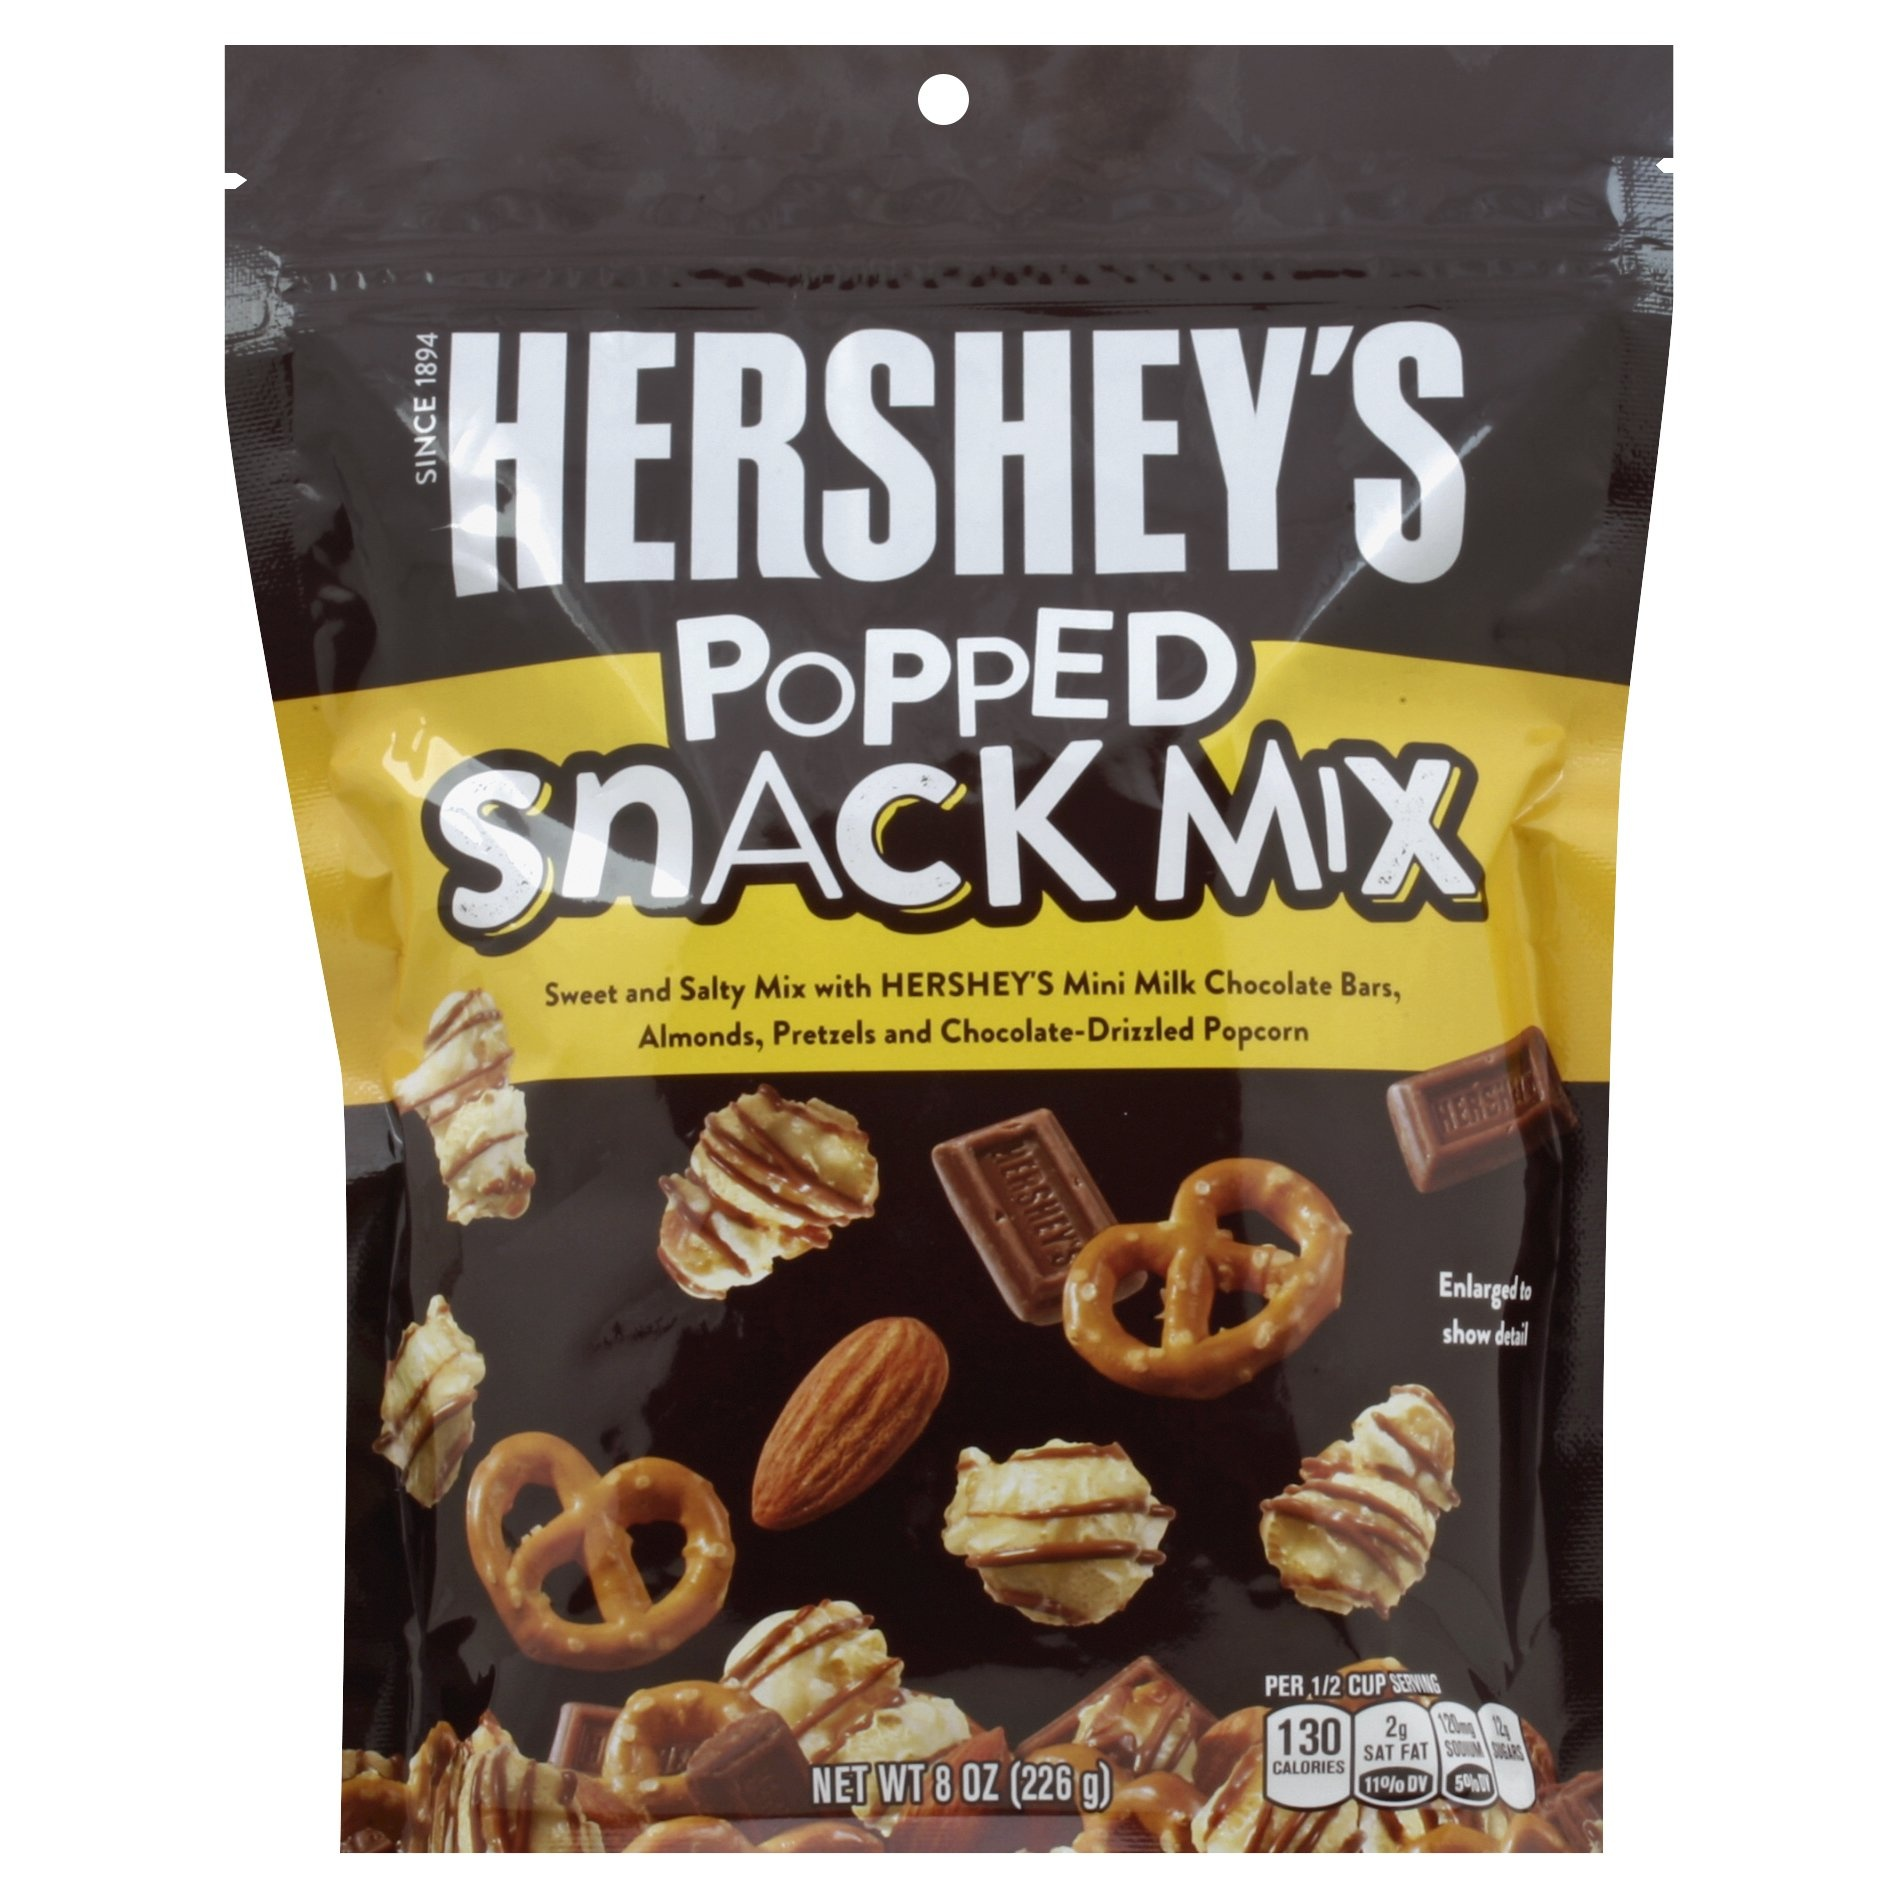 slide 1 of 3, Hershey's Popped Snack Mix,